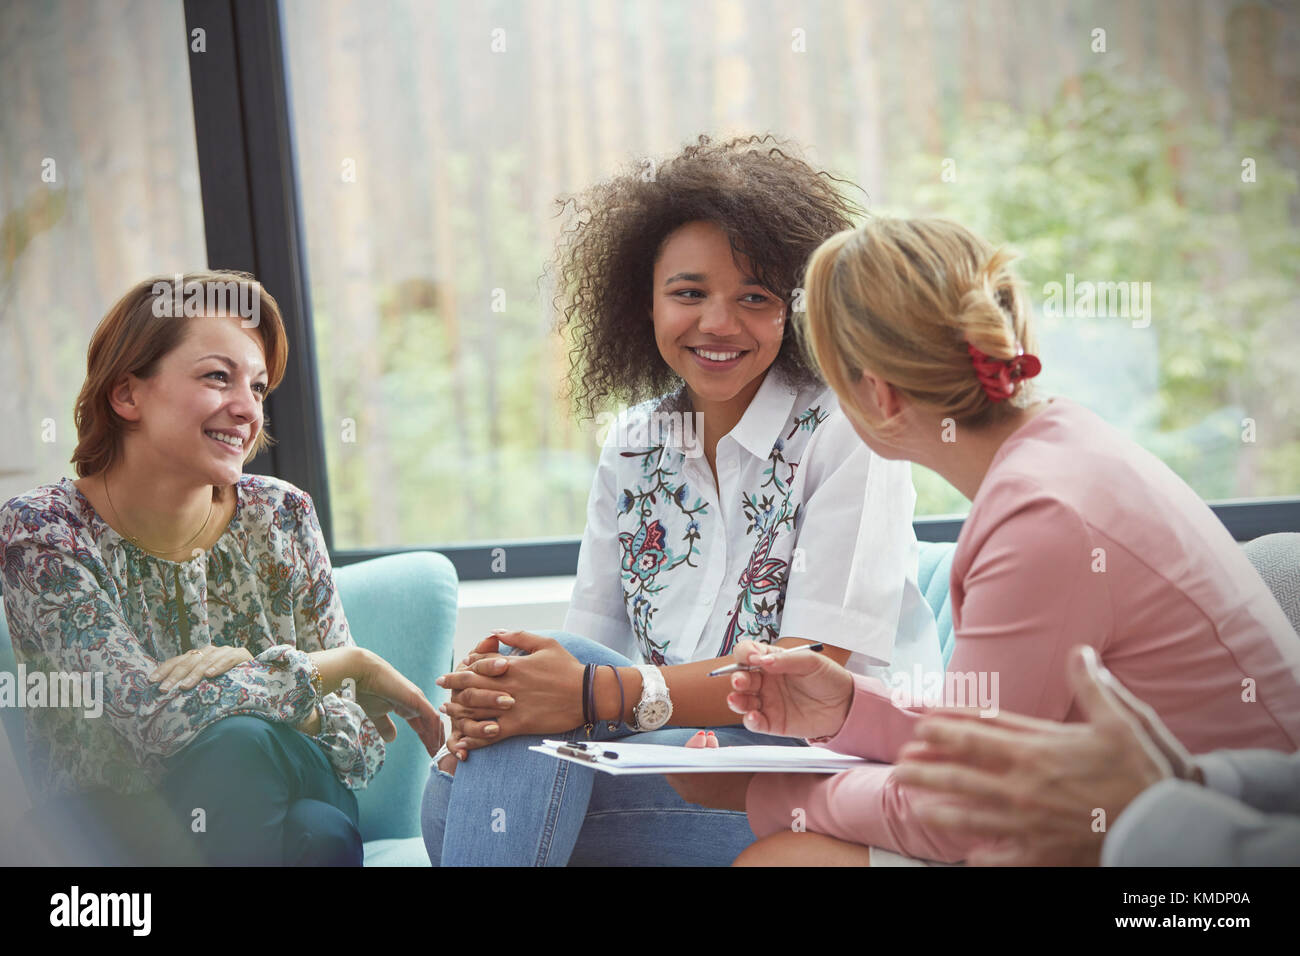 Smiling women talking in group therapy session - Stock Image